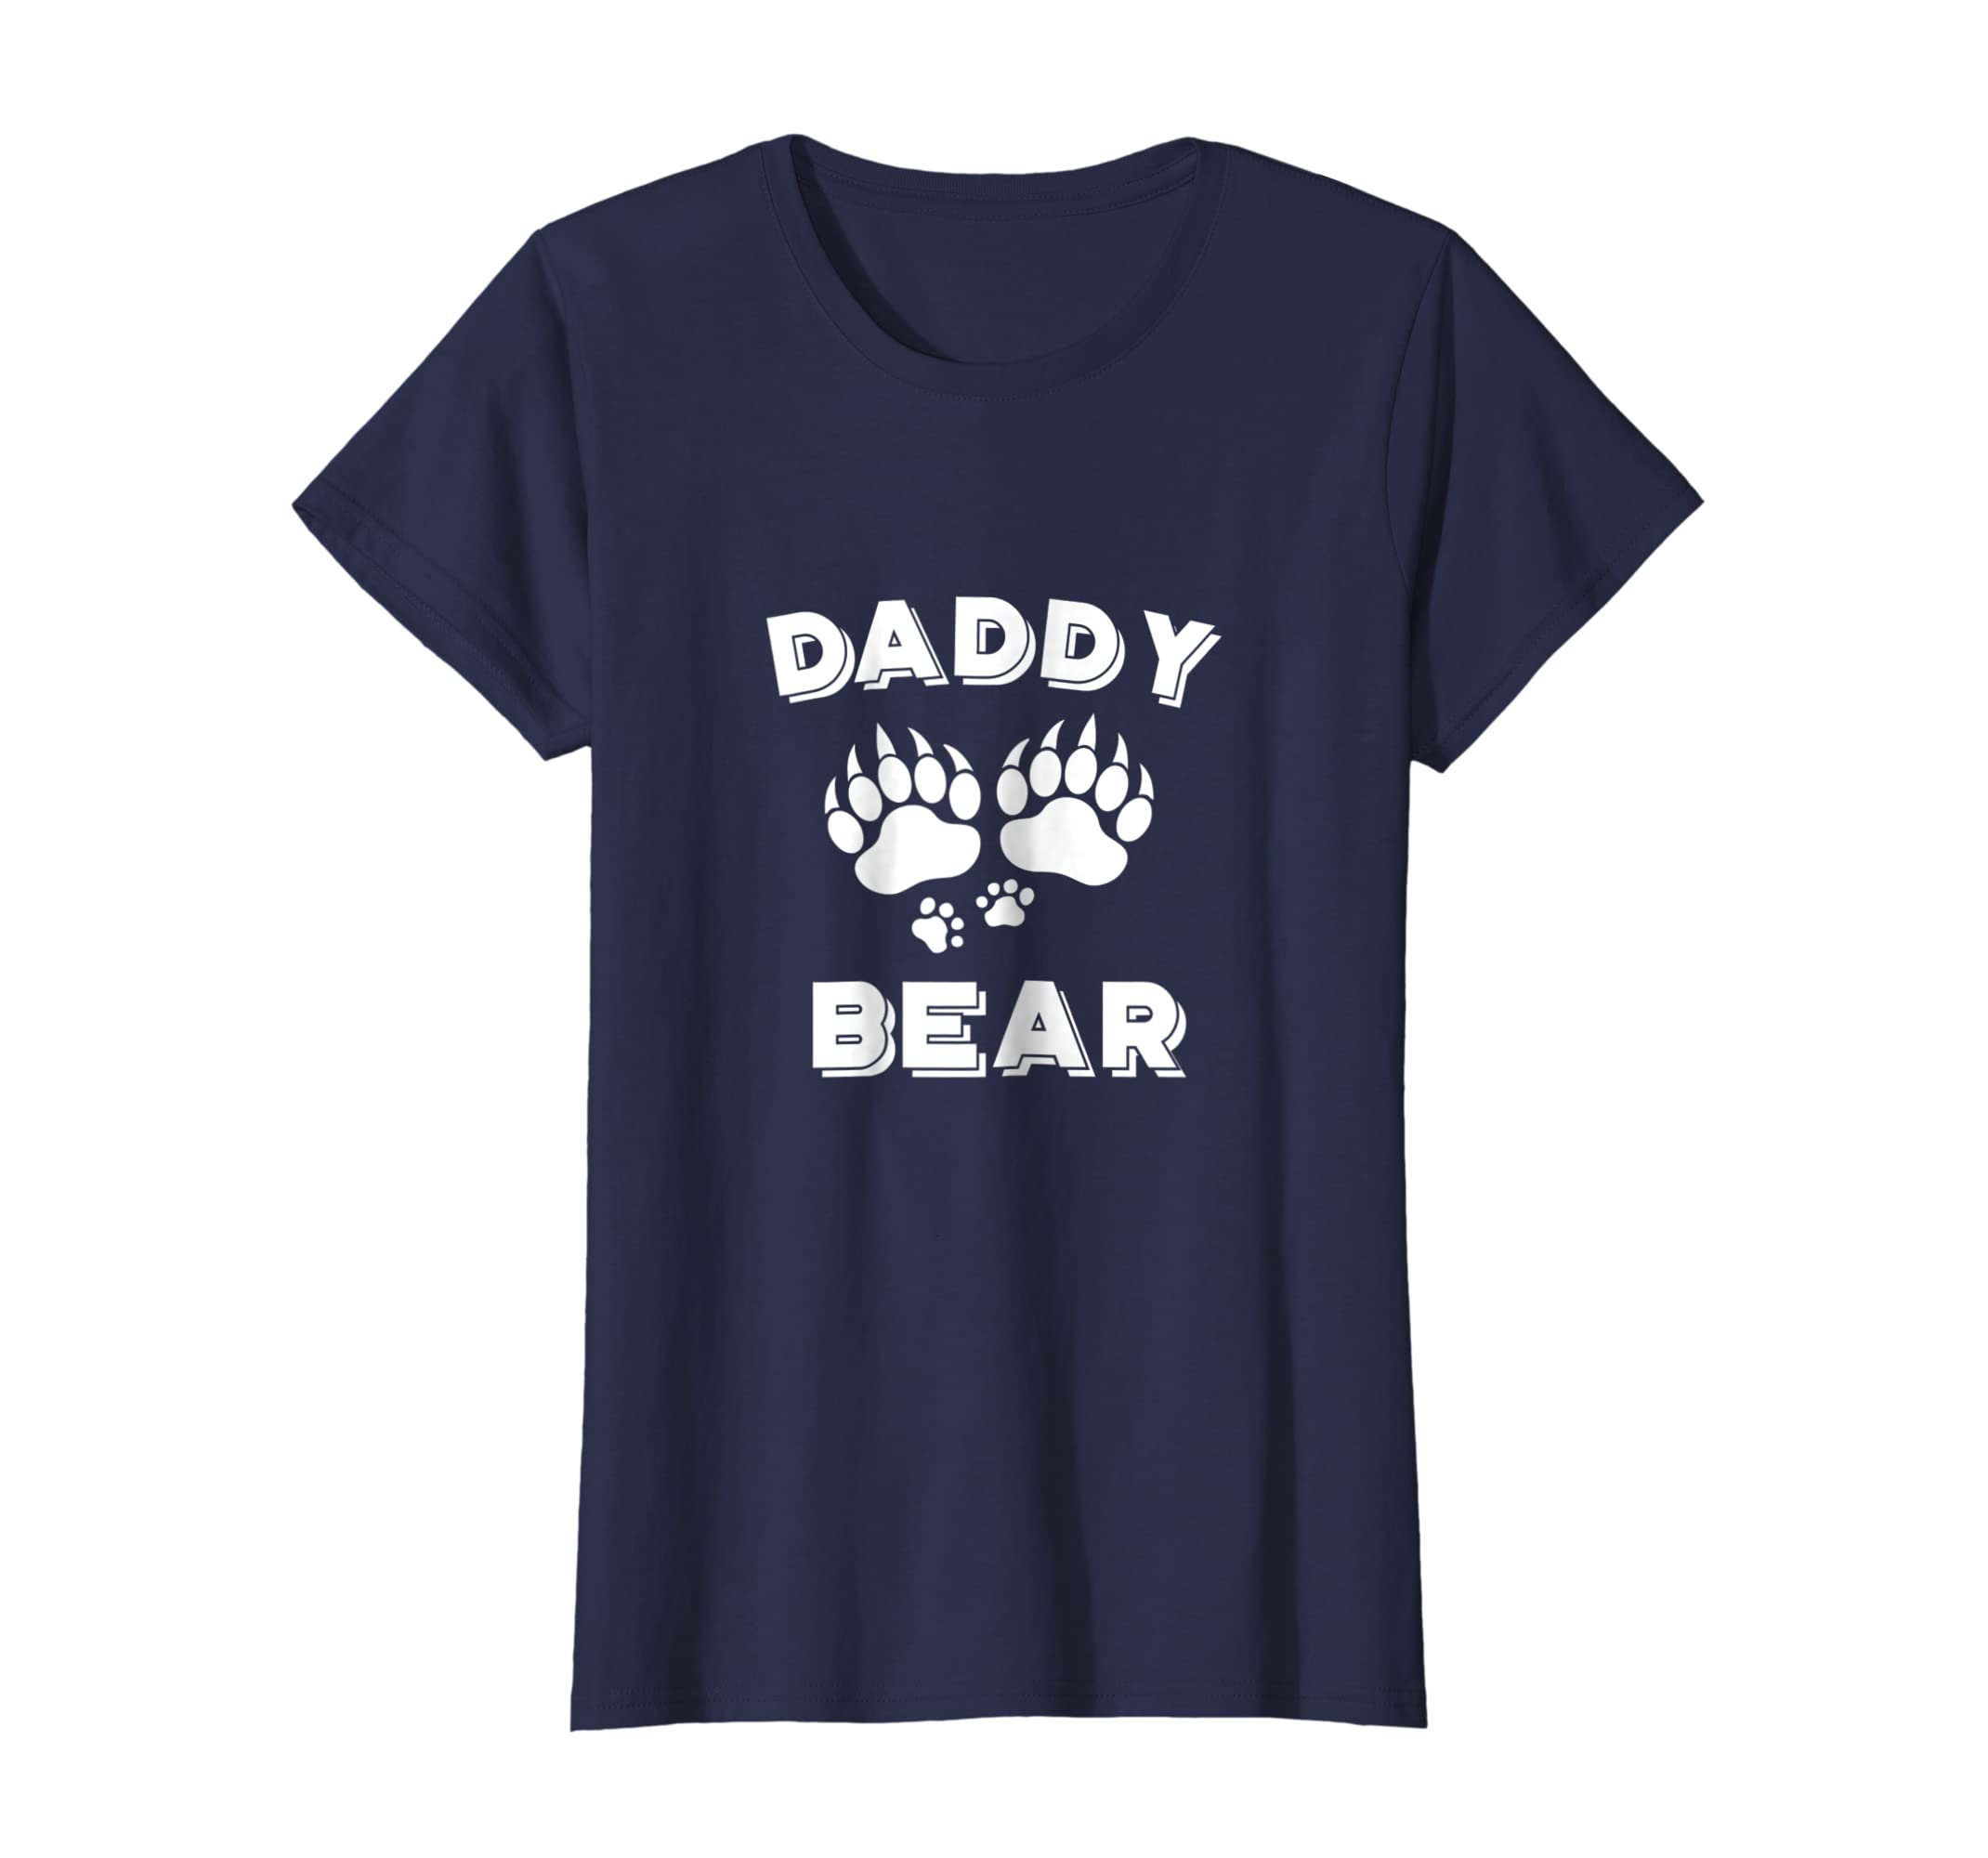 5bcbadd0 Amazon.com: Daddy Bear T-Shirt Awesome Camping Fathers Day Gifts: Clothing